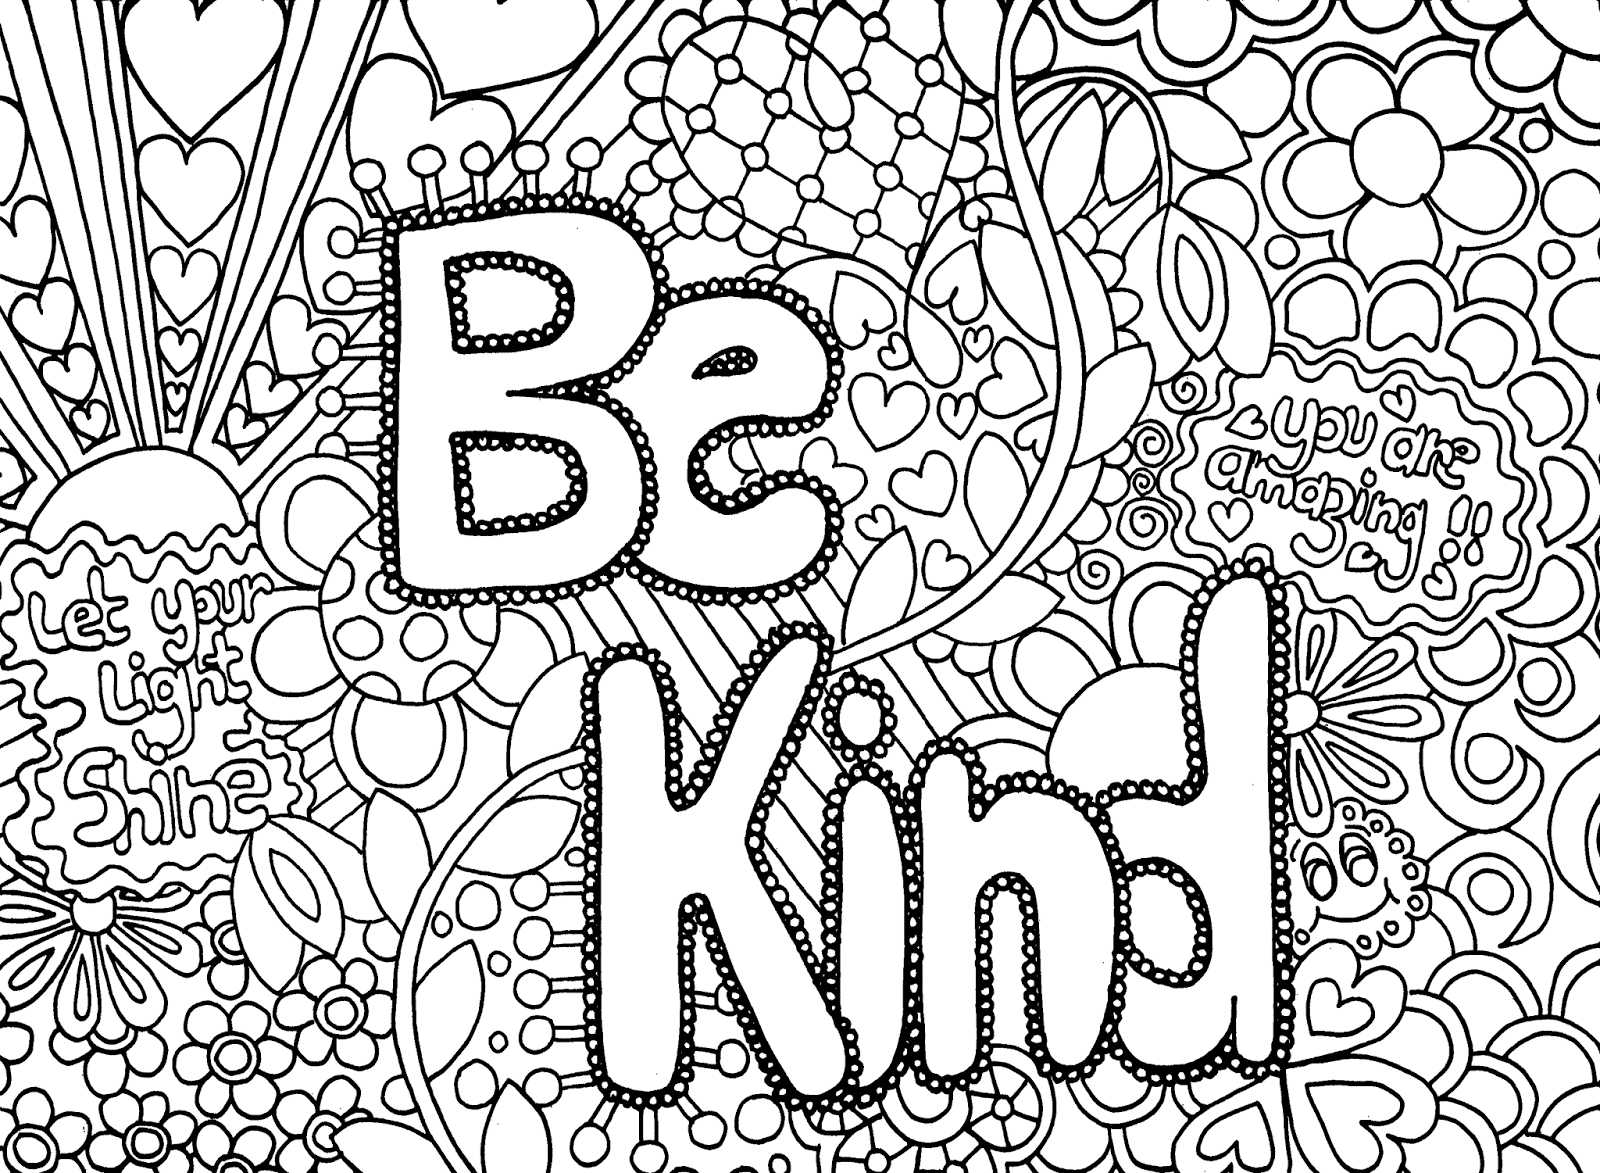 Abstract flower coloring pages - For The Last Few Years Kid S Coloring Pages Printed From The Internet Have Become An Very